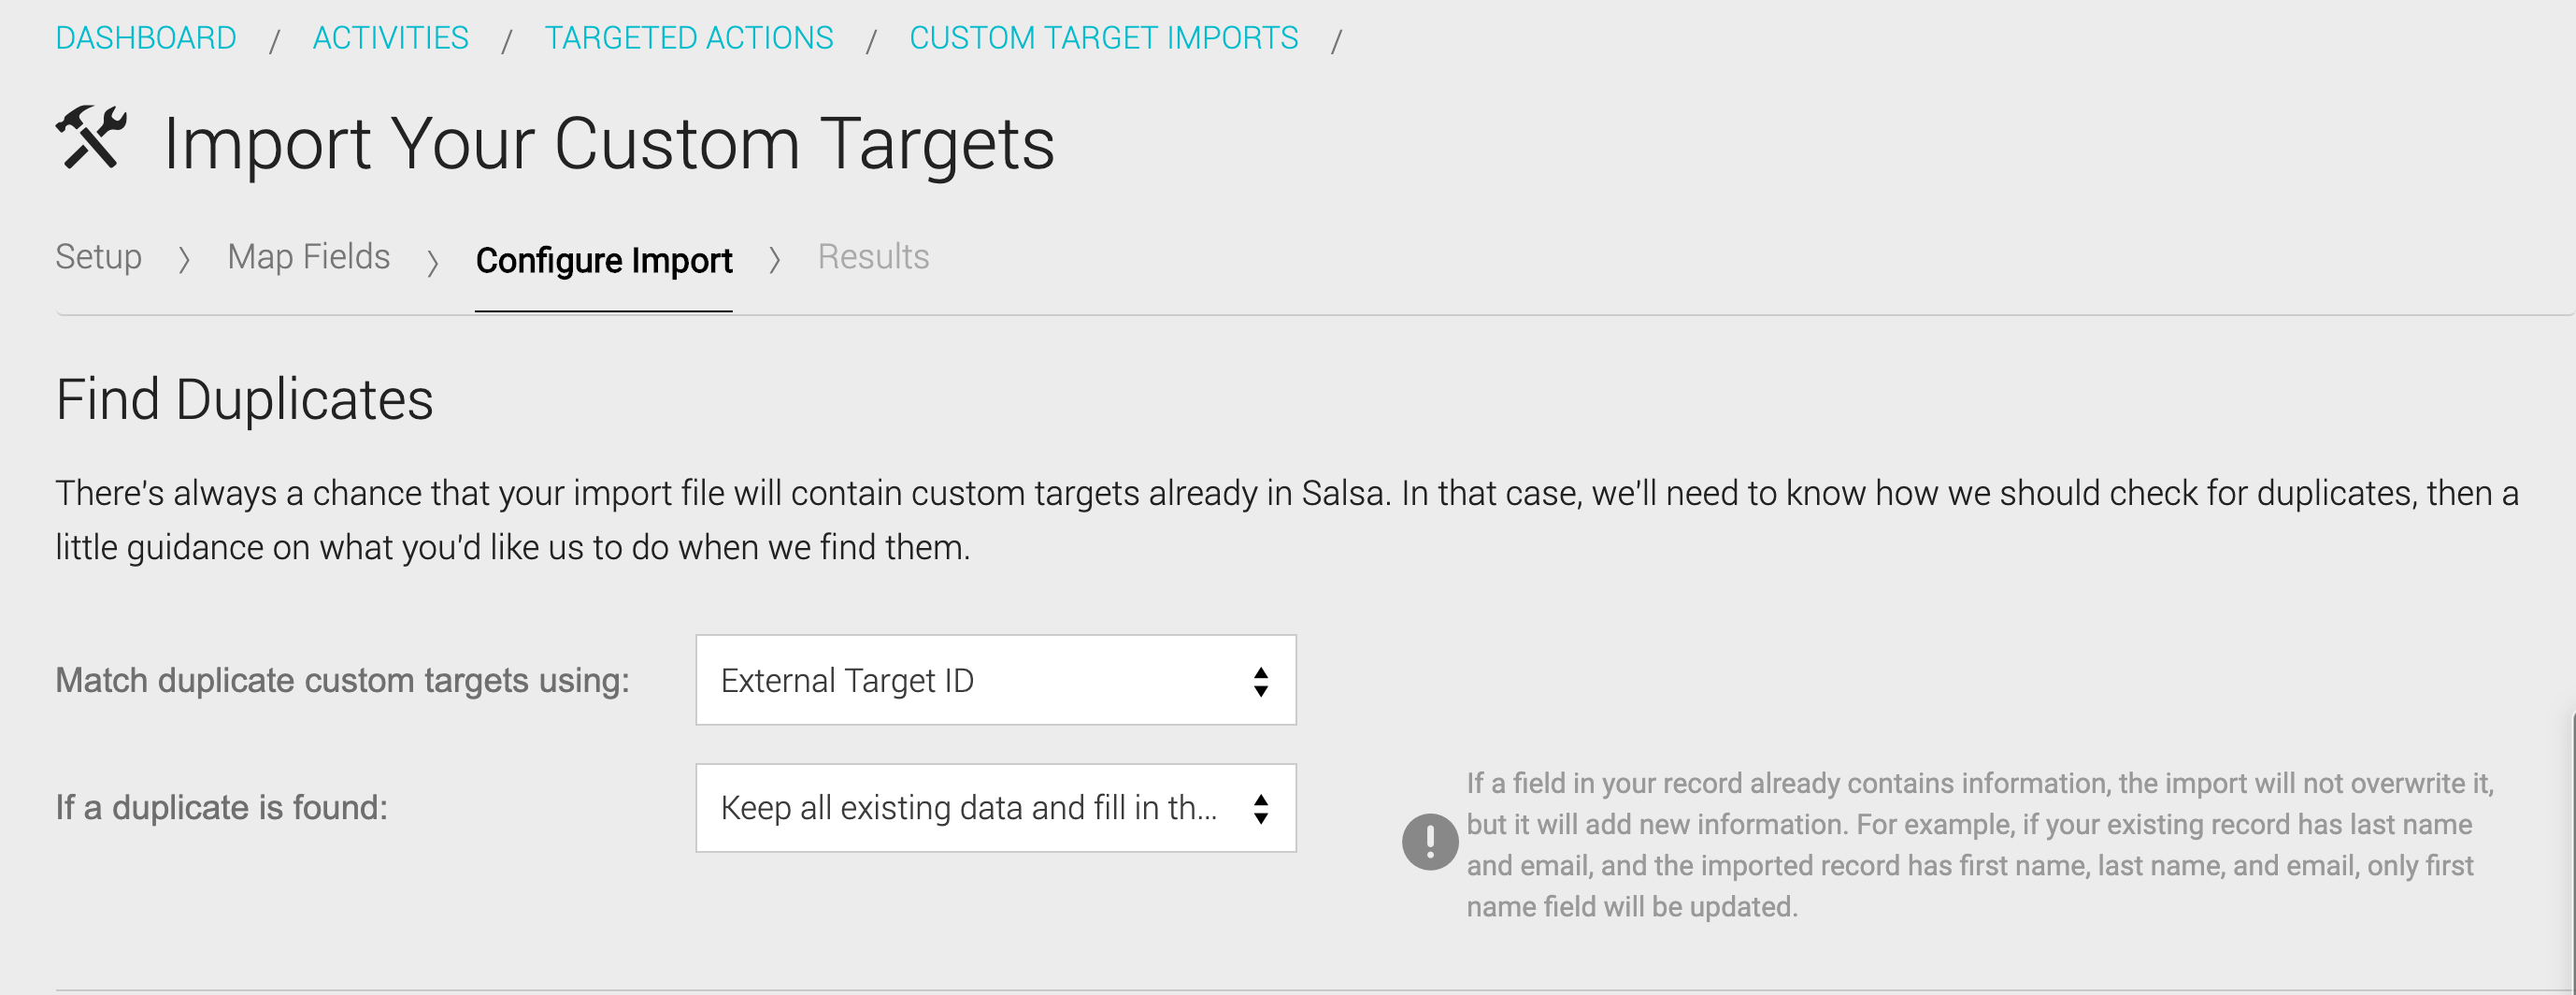 Import_Custom_Targets_Find_Duplicates.png